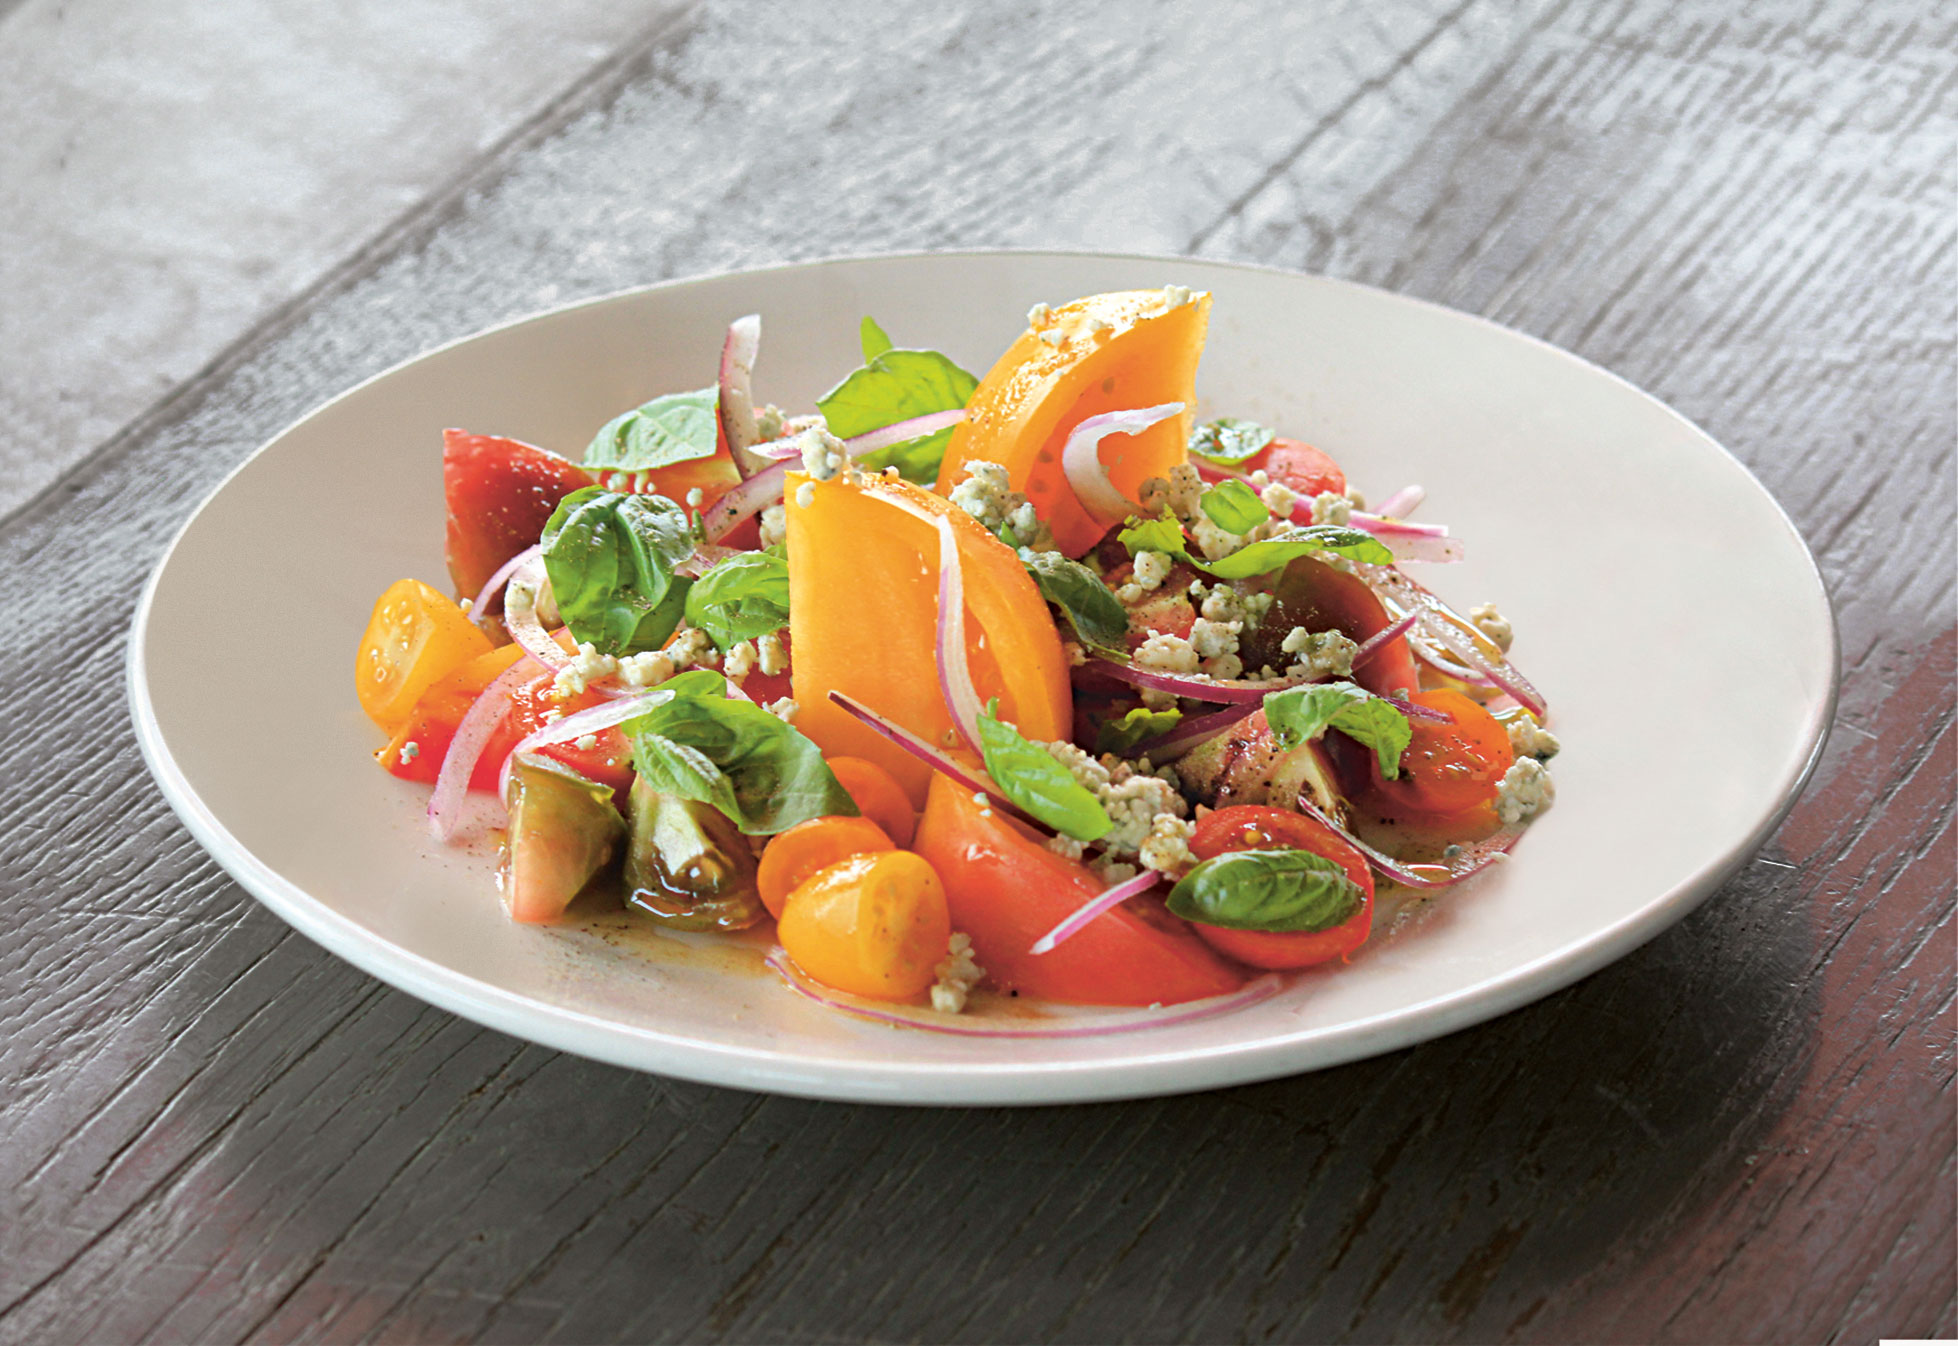 Rooftop heirloom tomato and basil salad, by John Mooney at Bell, Book & Candle